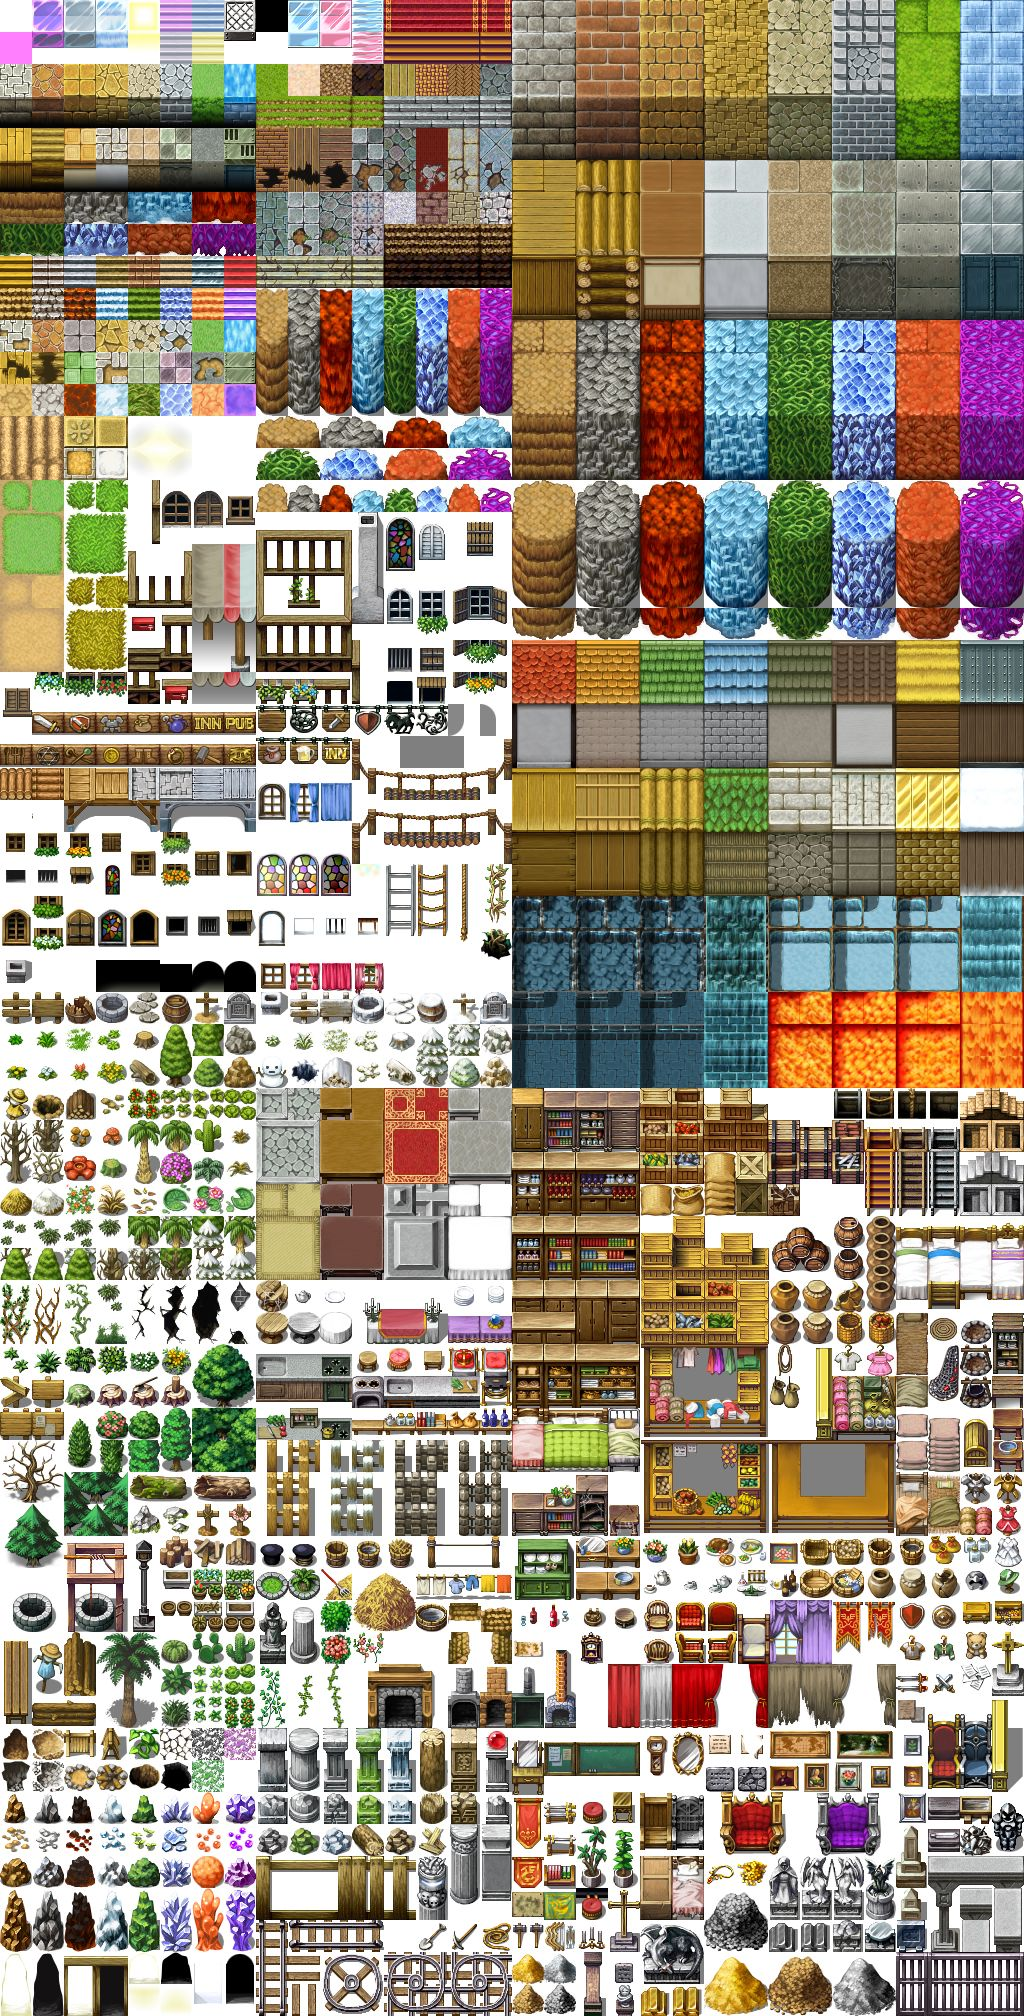 Pin on Tilesets